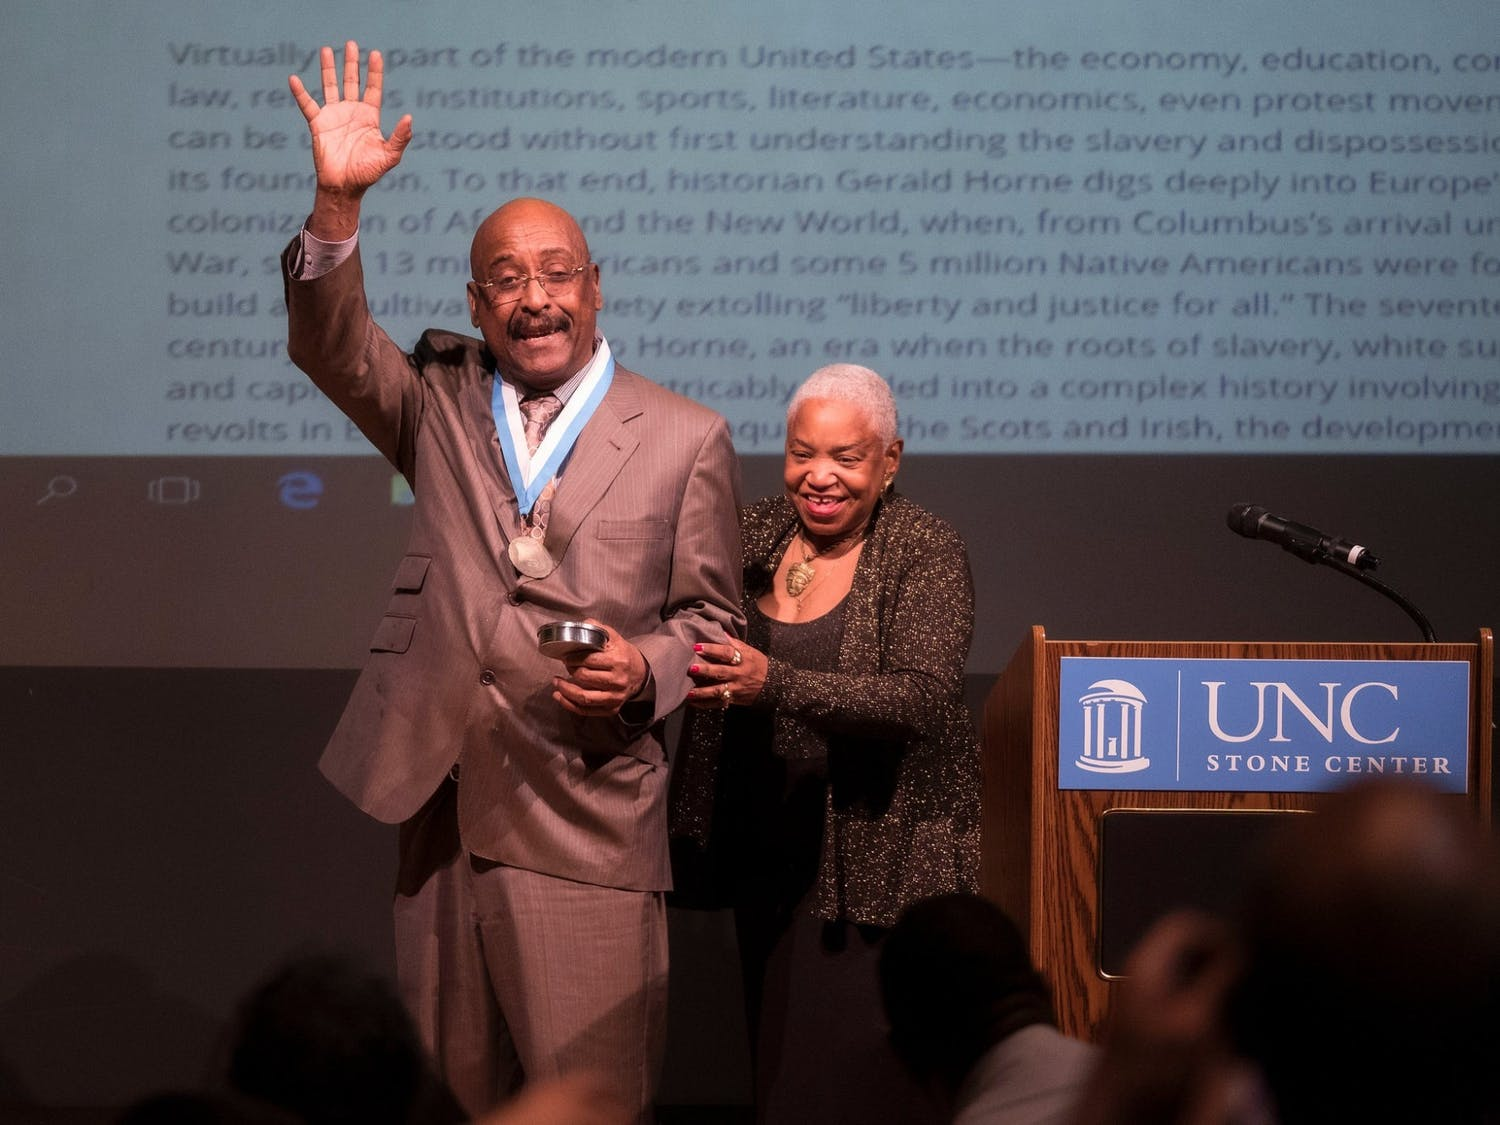 Professor Genna Rae McNeil accompanies Professor Colin Palmer as he receives the Award for Scholarly Distinction at the University of North Carolina, Chapel Hill, in 2018. Photo courtesy of Jon Gardiner.